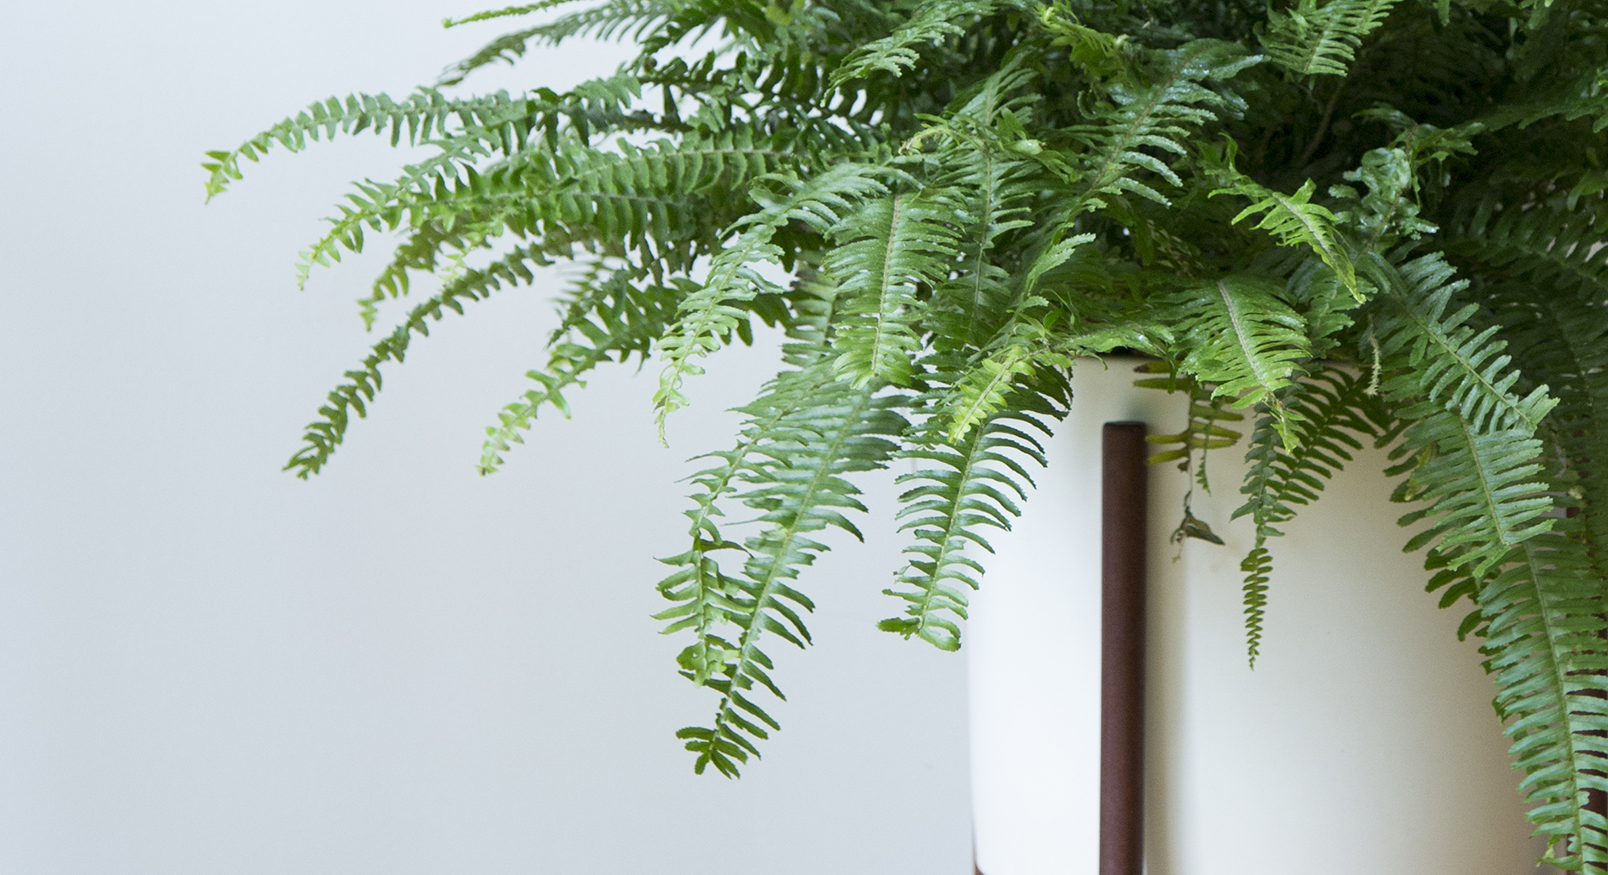 Introducing...The Boston Fern - Nephrolepis Exaltata